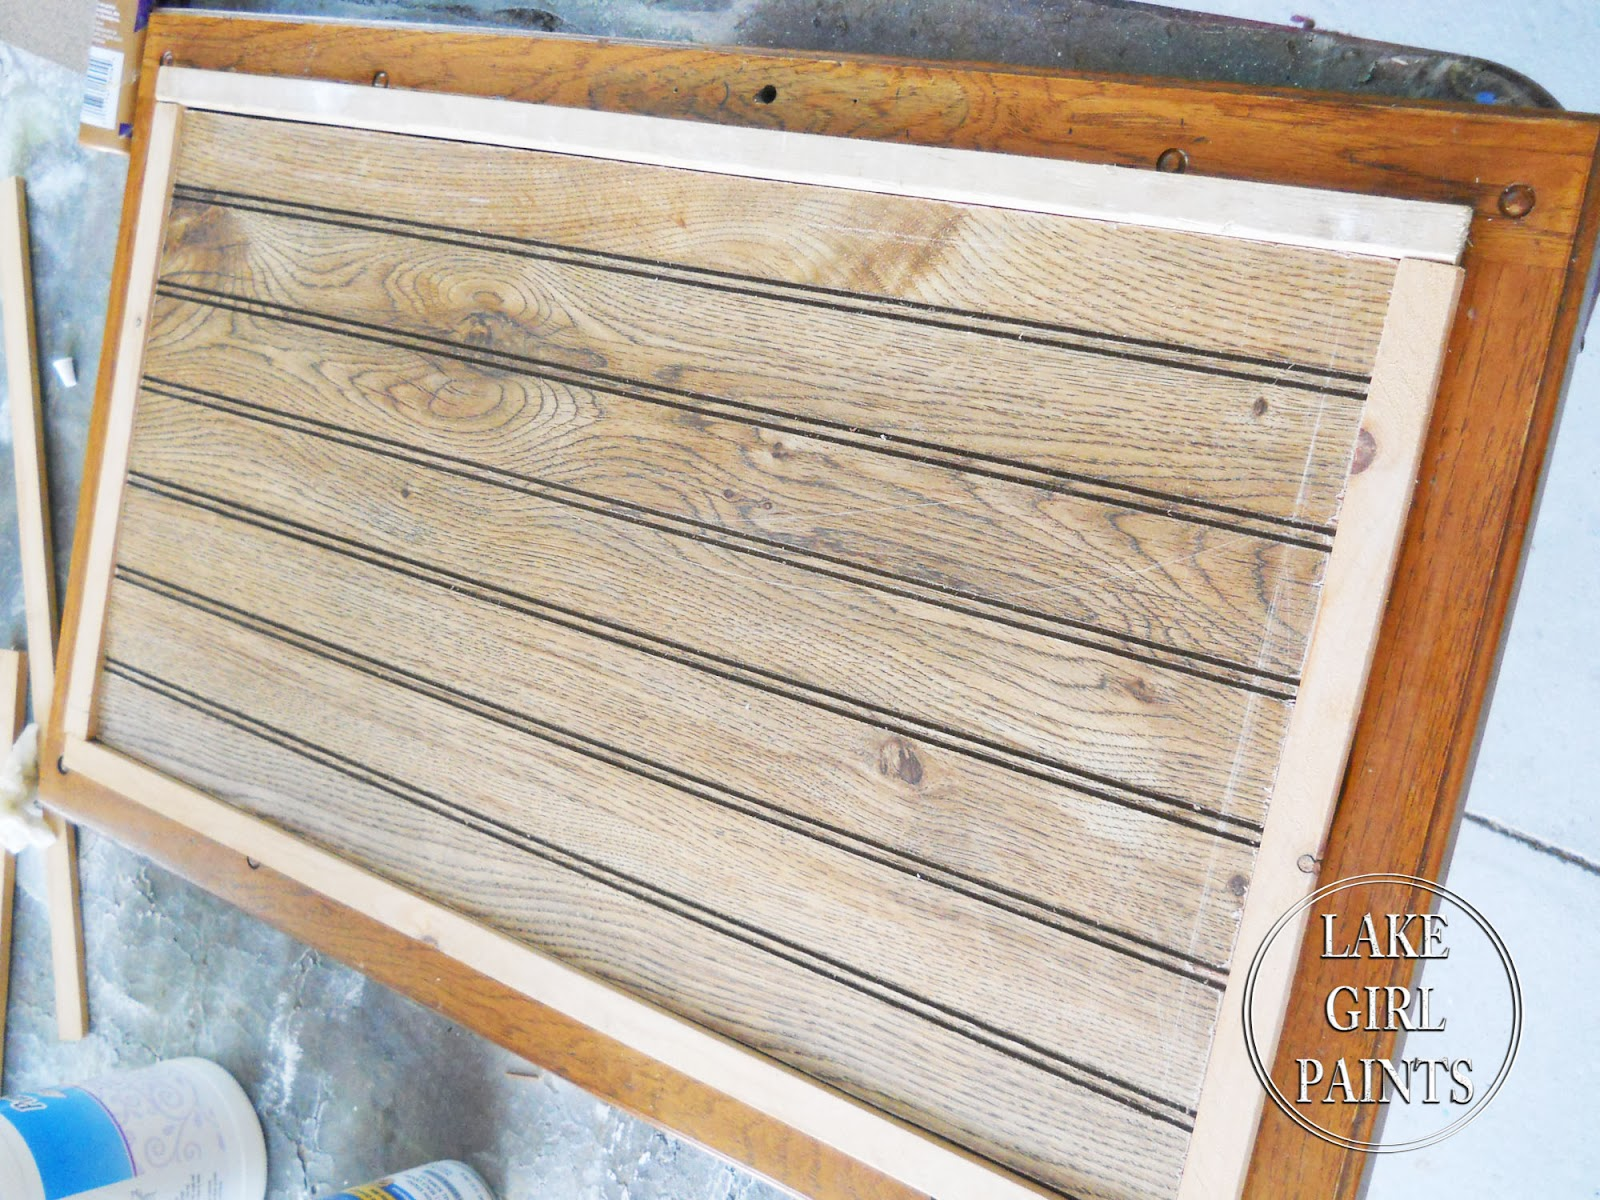 Lake Girl Paints Old Entertainment Center Gets Beadboard